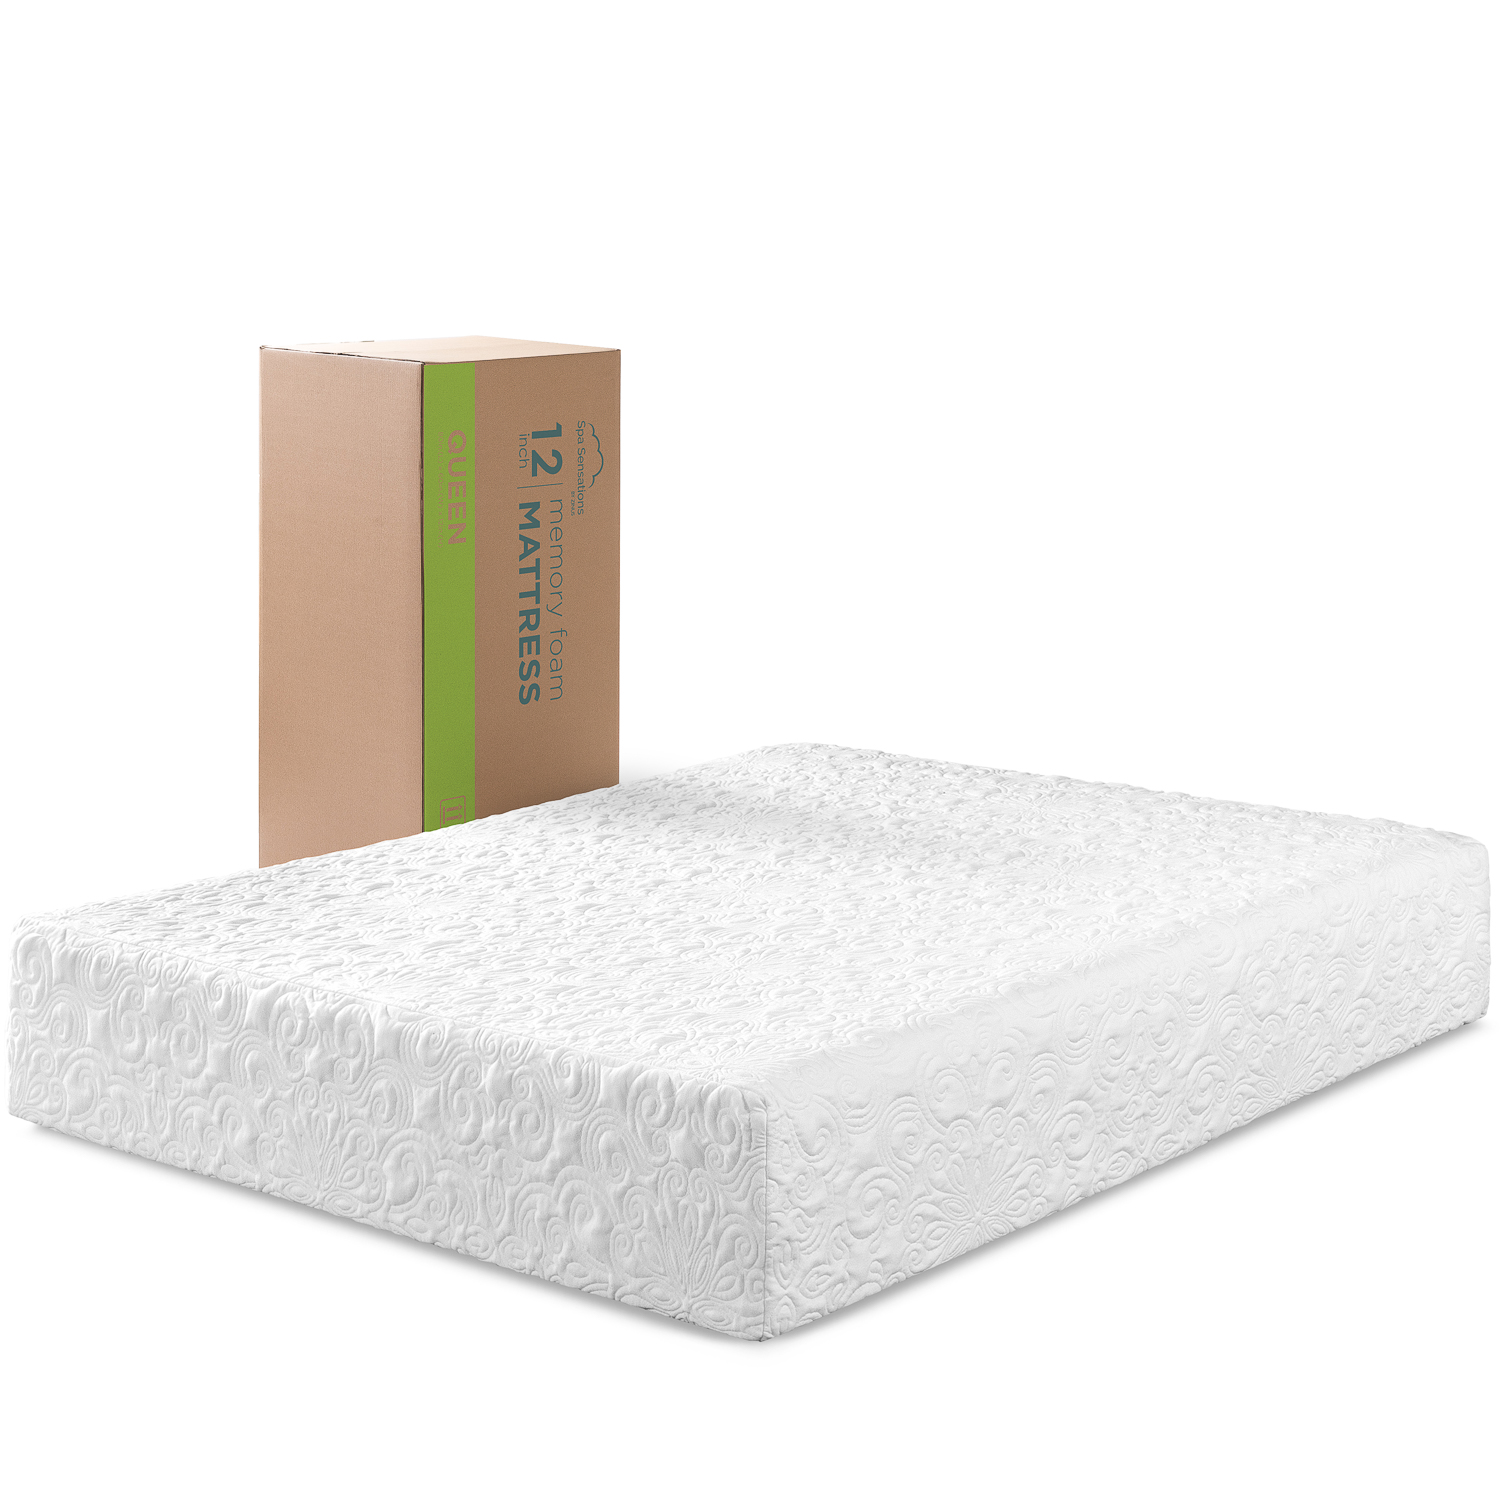 Spa Sensations By Zinus 12 Theratouch Memory Foam Mattress Twin